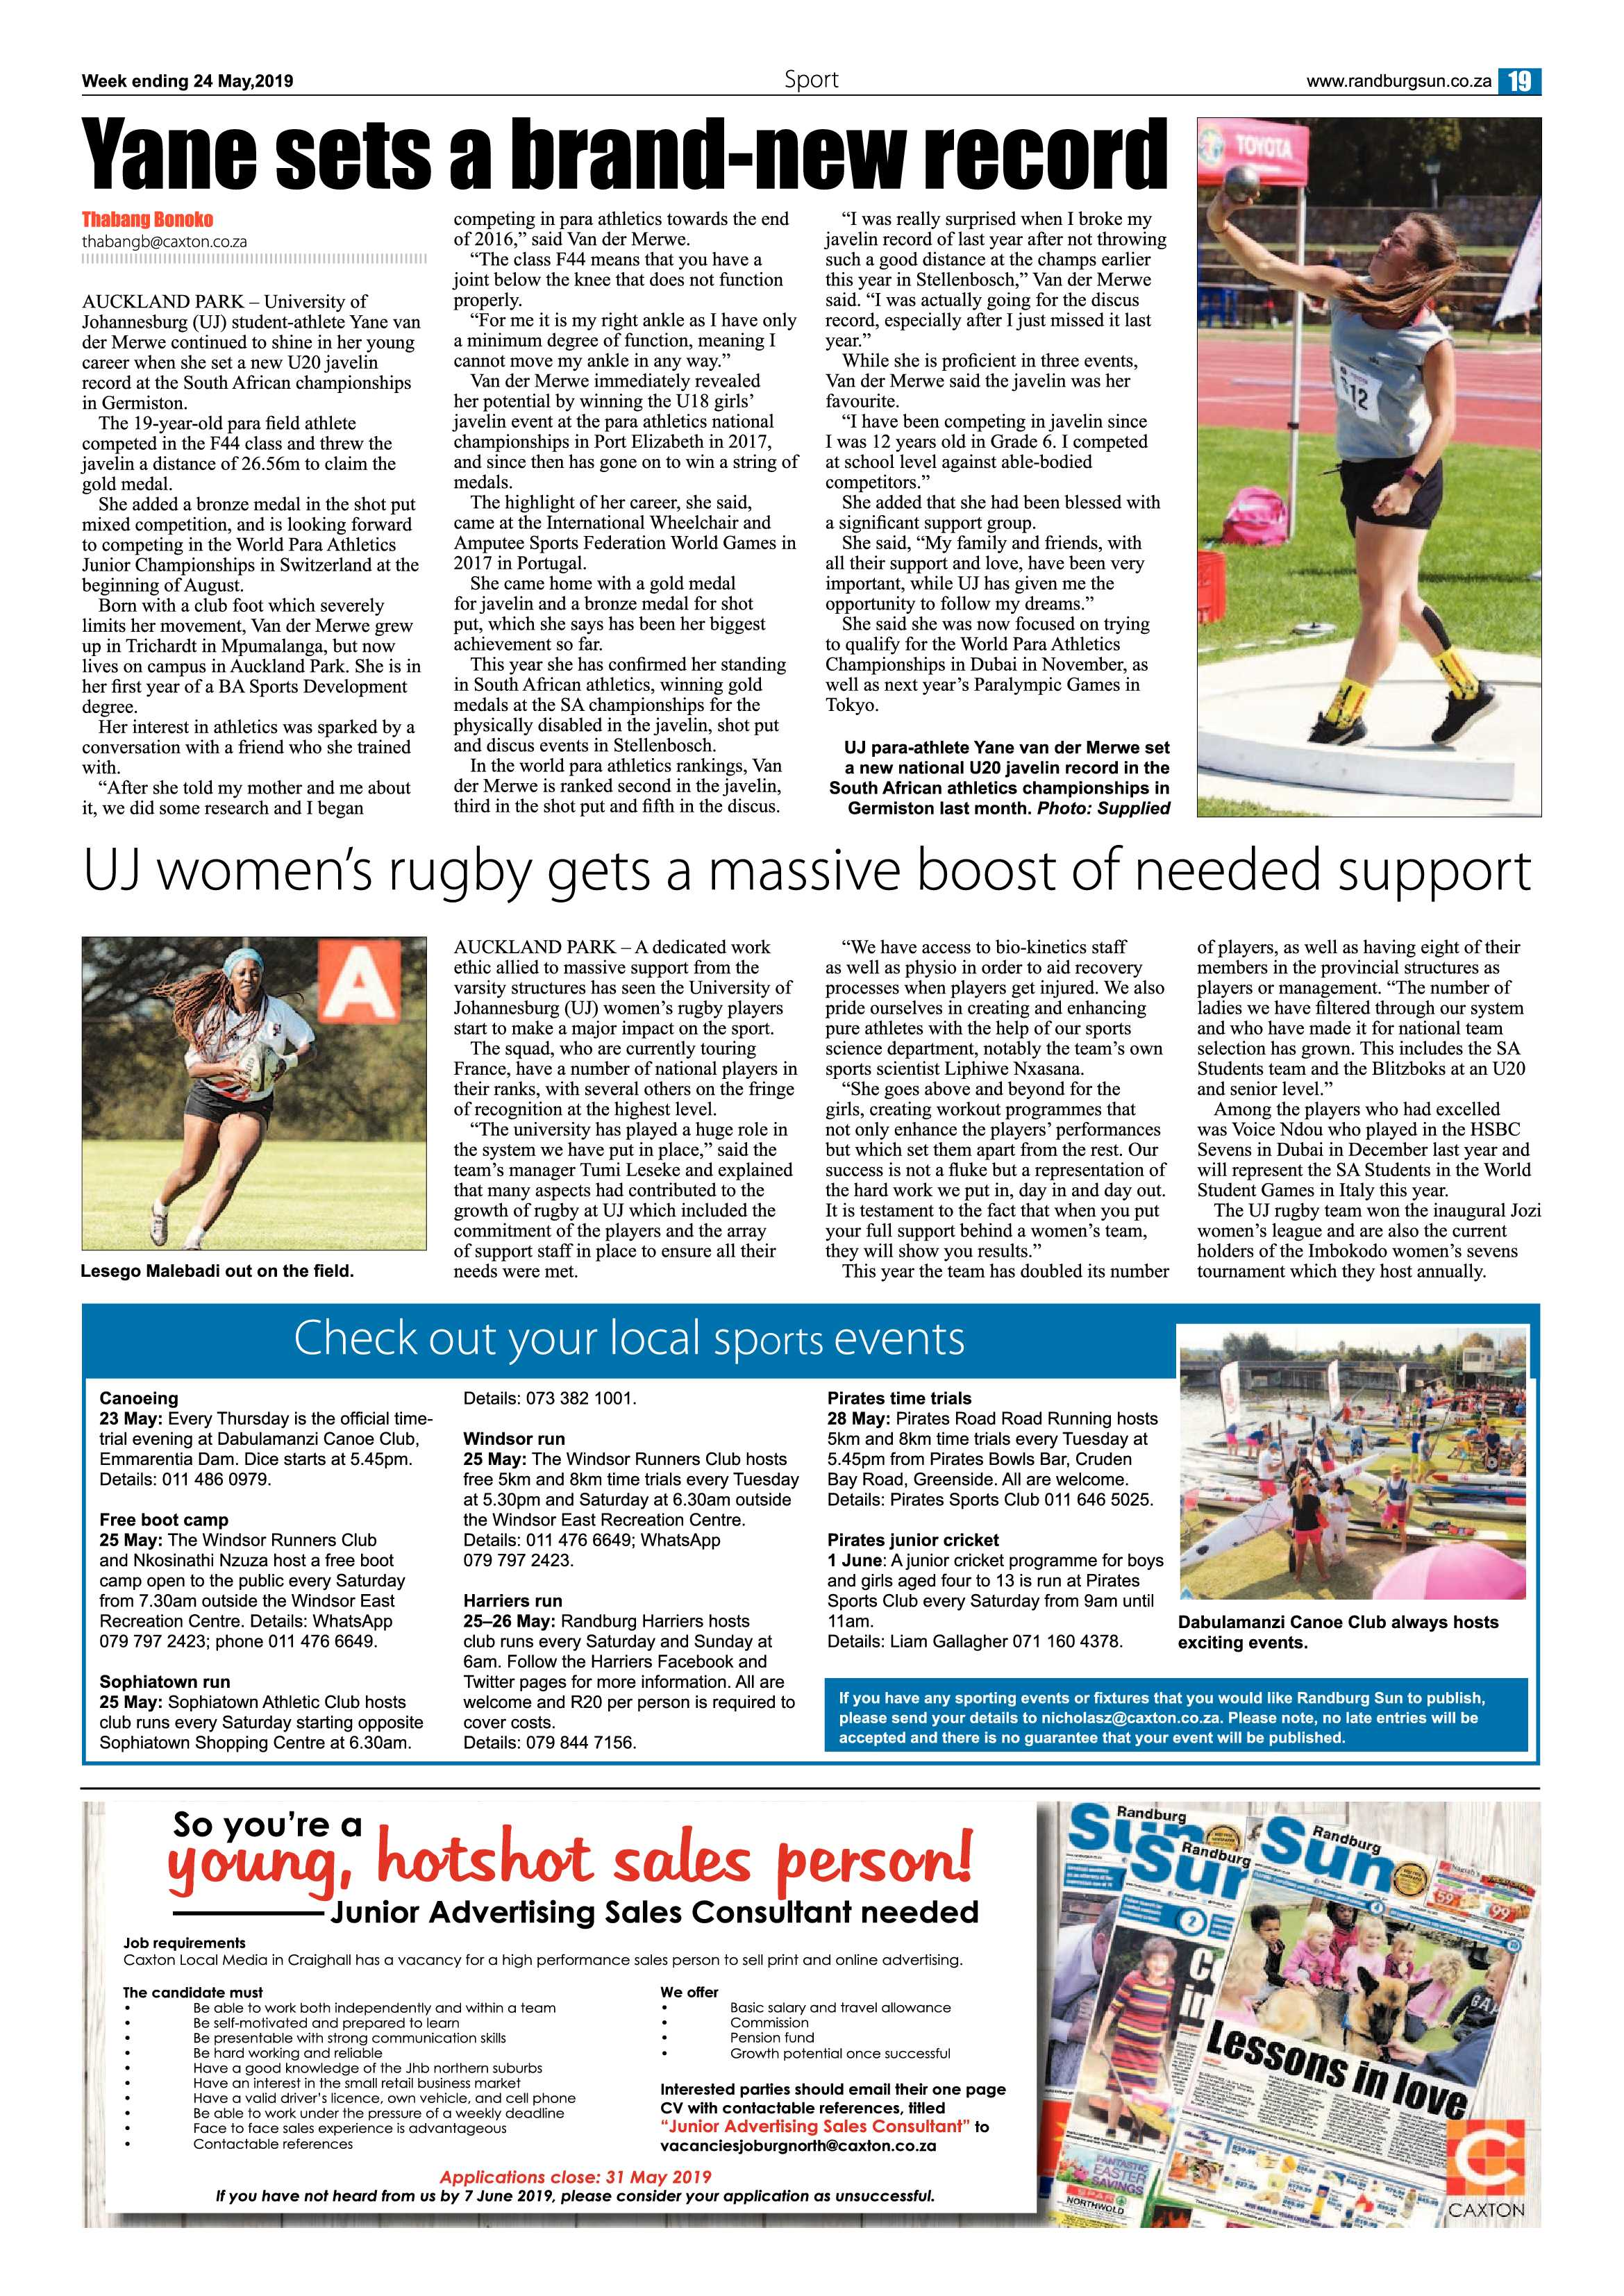 RS 24 May 2019 | Randburg Sun